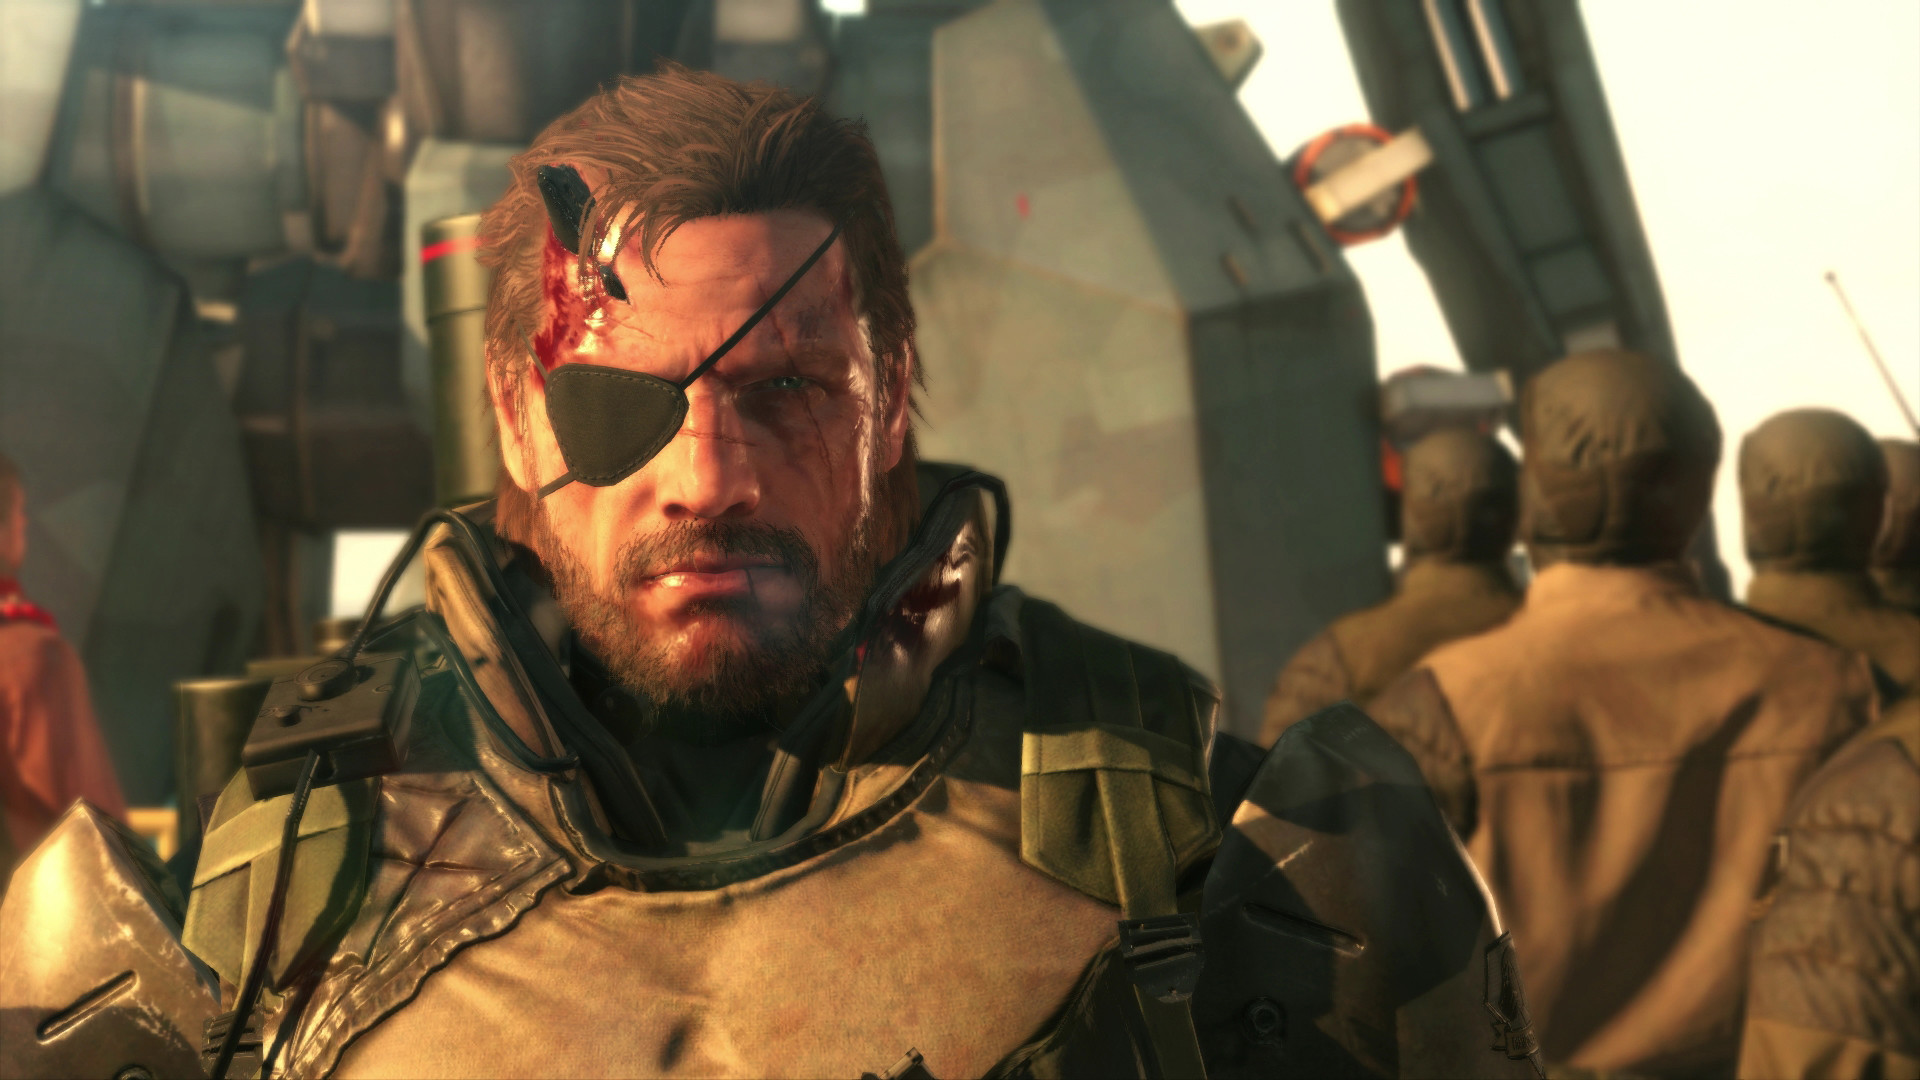 Res: 1920x1080, Metal Gear Solid 5 is the best and most disappointing game of the year |  GamesRadar+